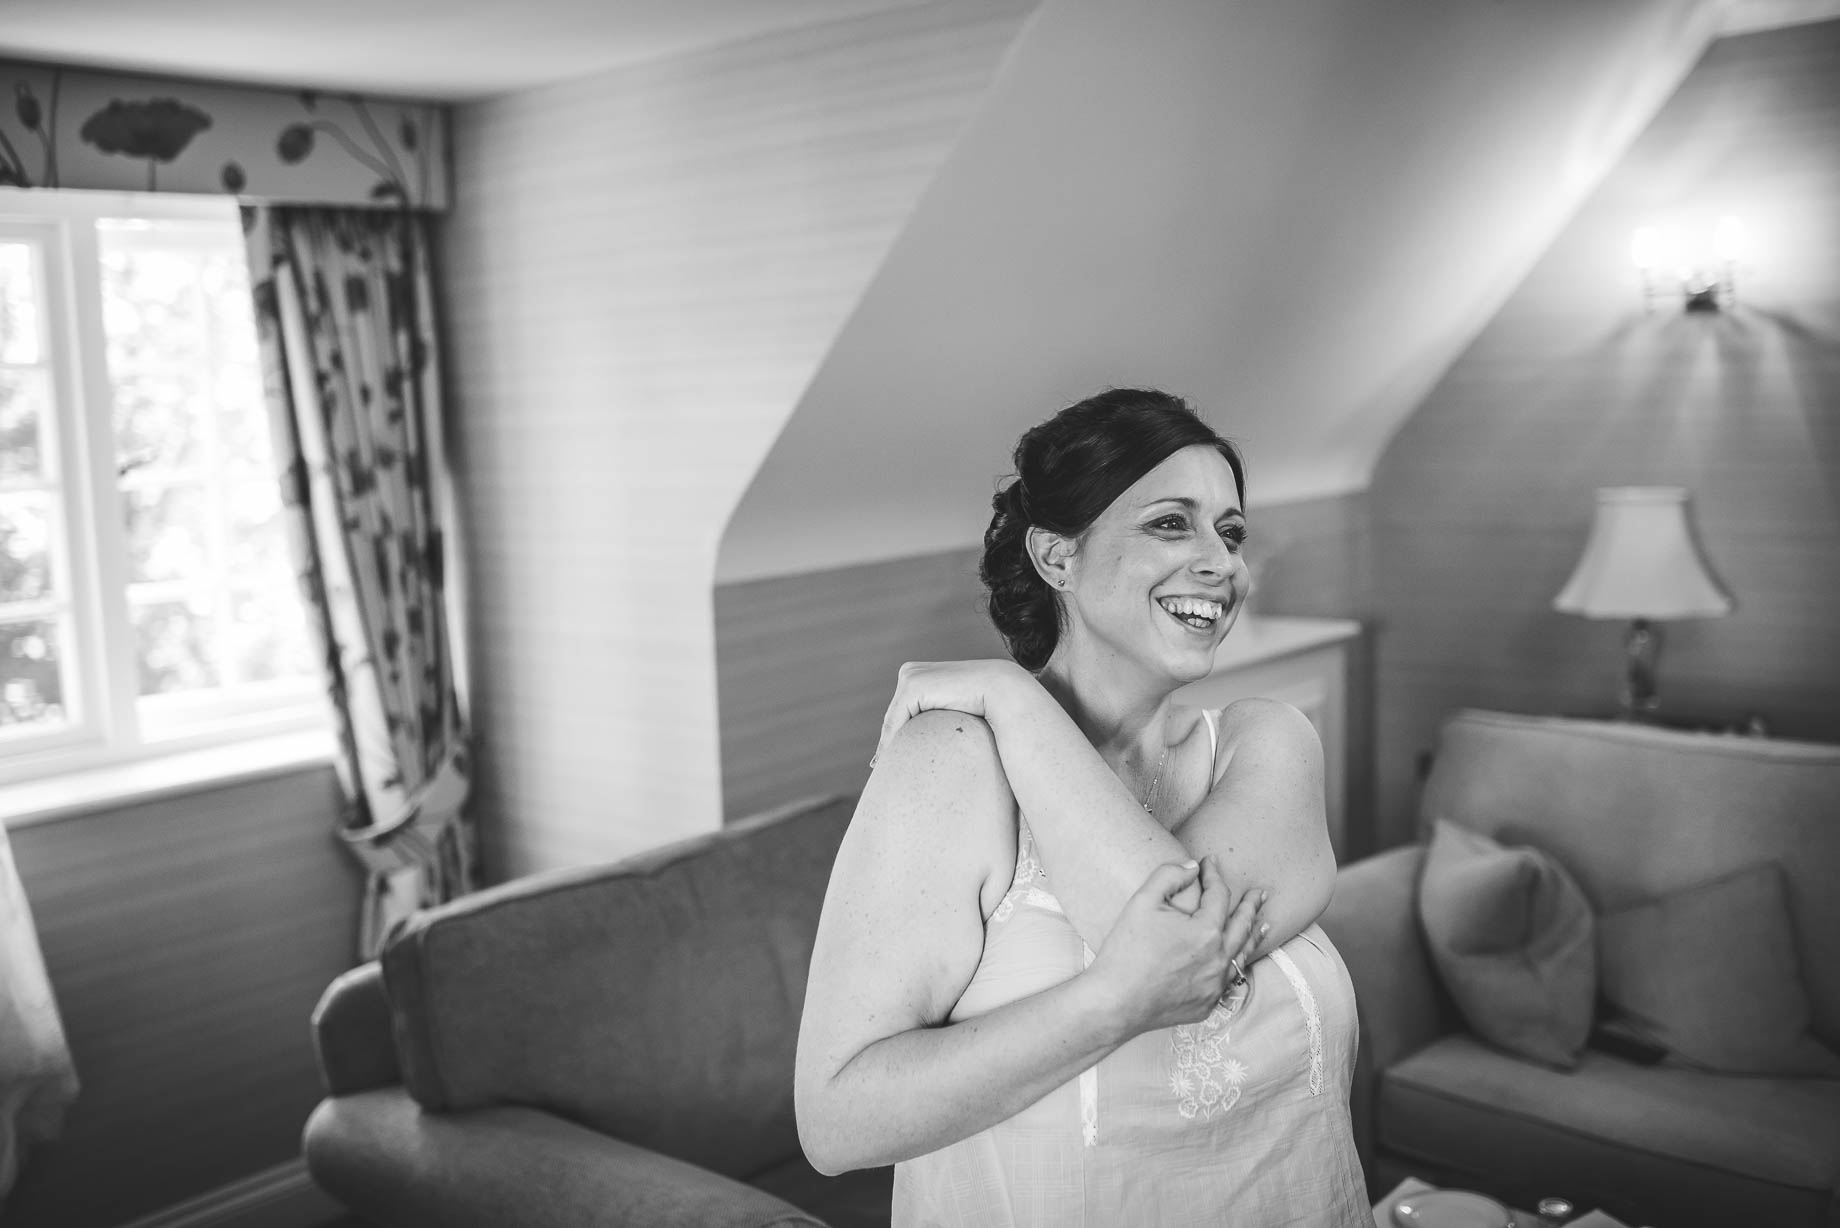 Luton Hoo wedding photography by Guy Collier Photography - Lauren and Gem (23 of 178)